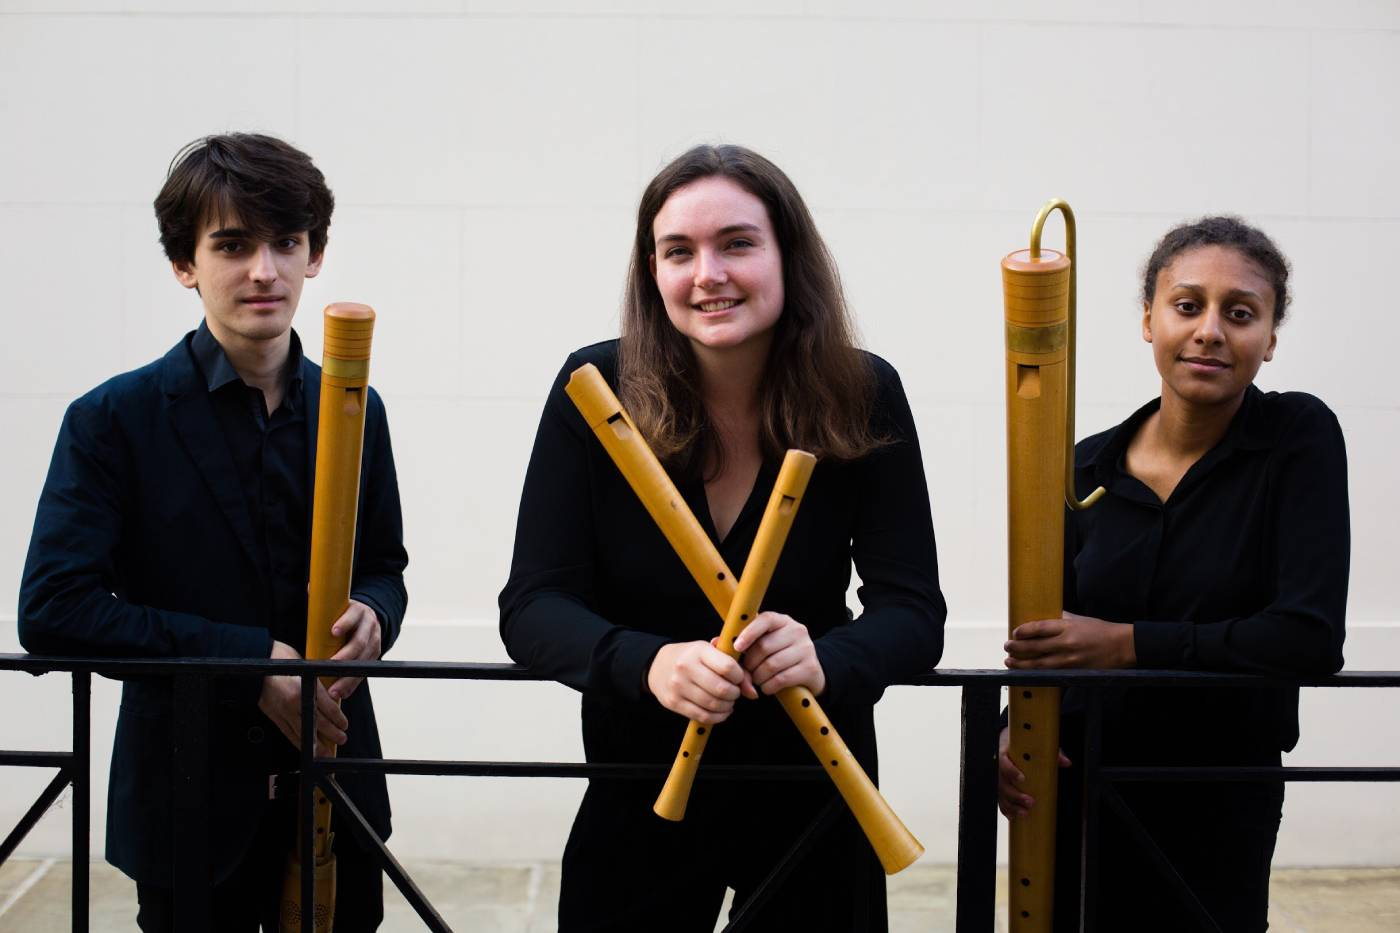 Hear Britain's top young musicians perform at Durham's Society of Recorder Players national festival